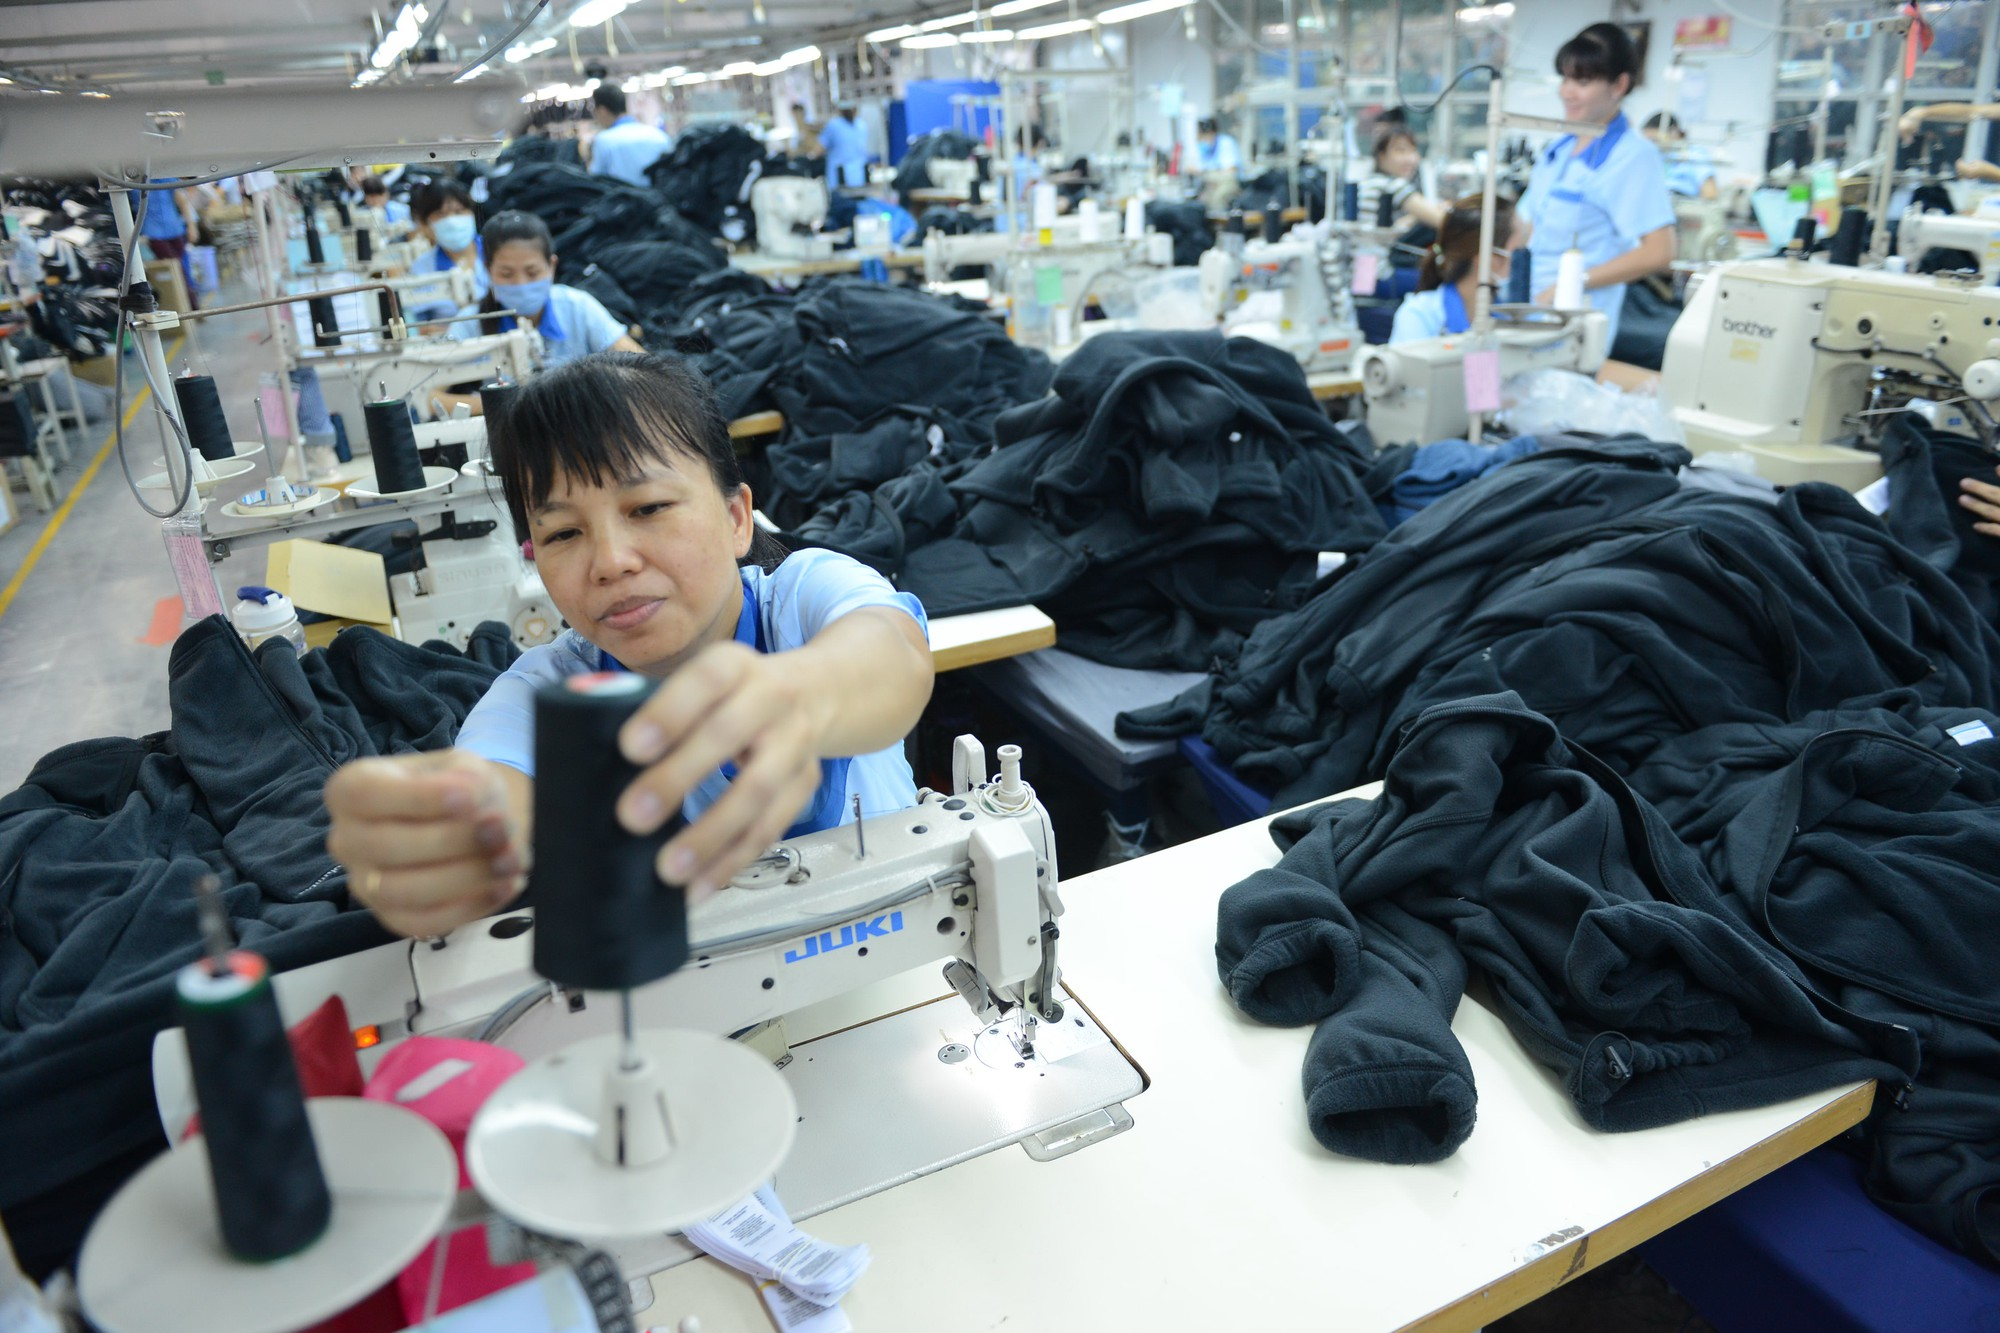 EU passes final procedure for free trade agreement with Vietnam